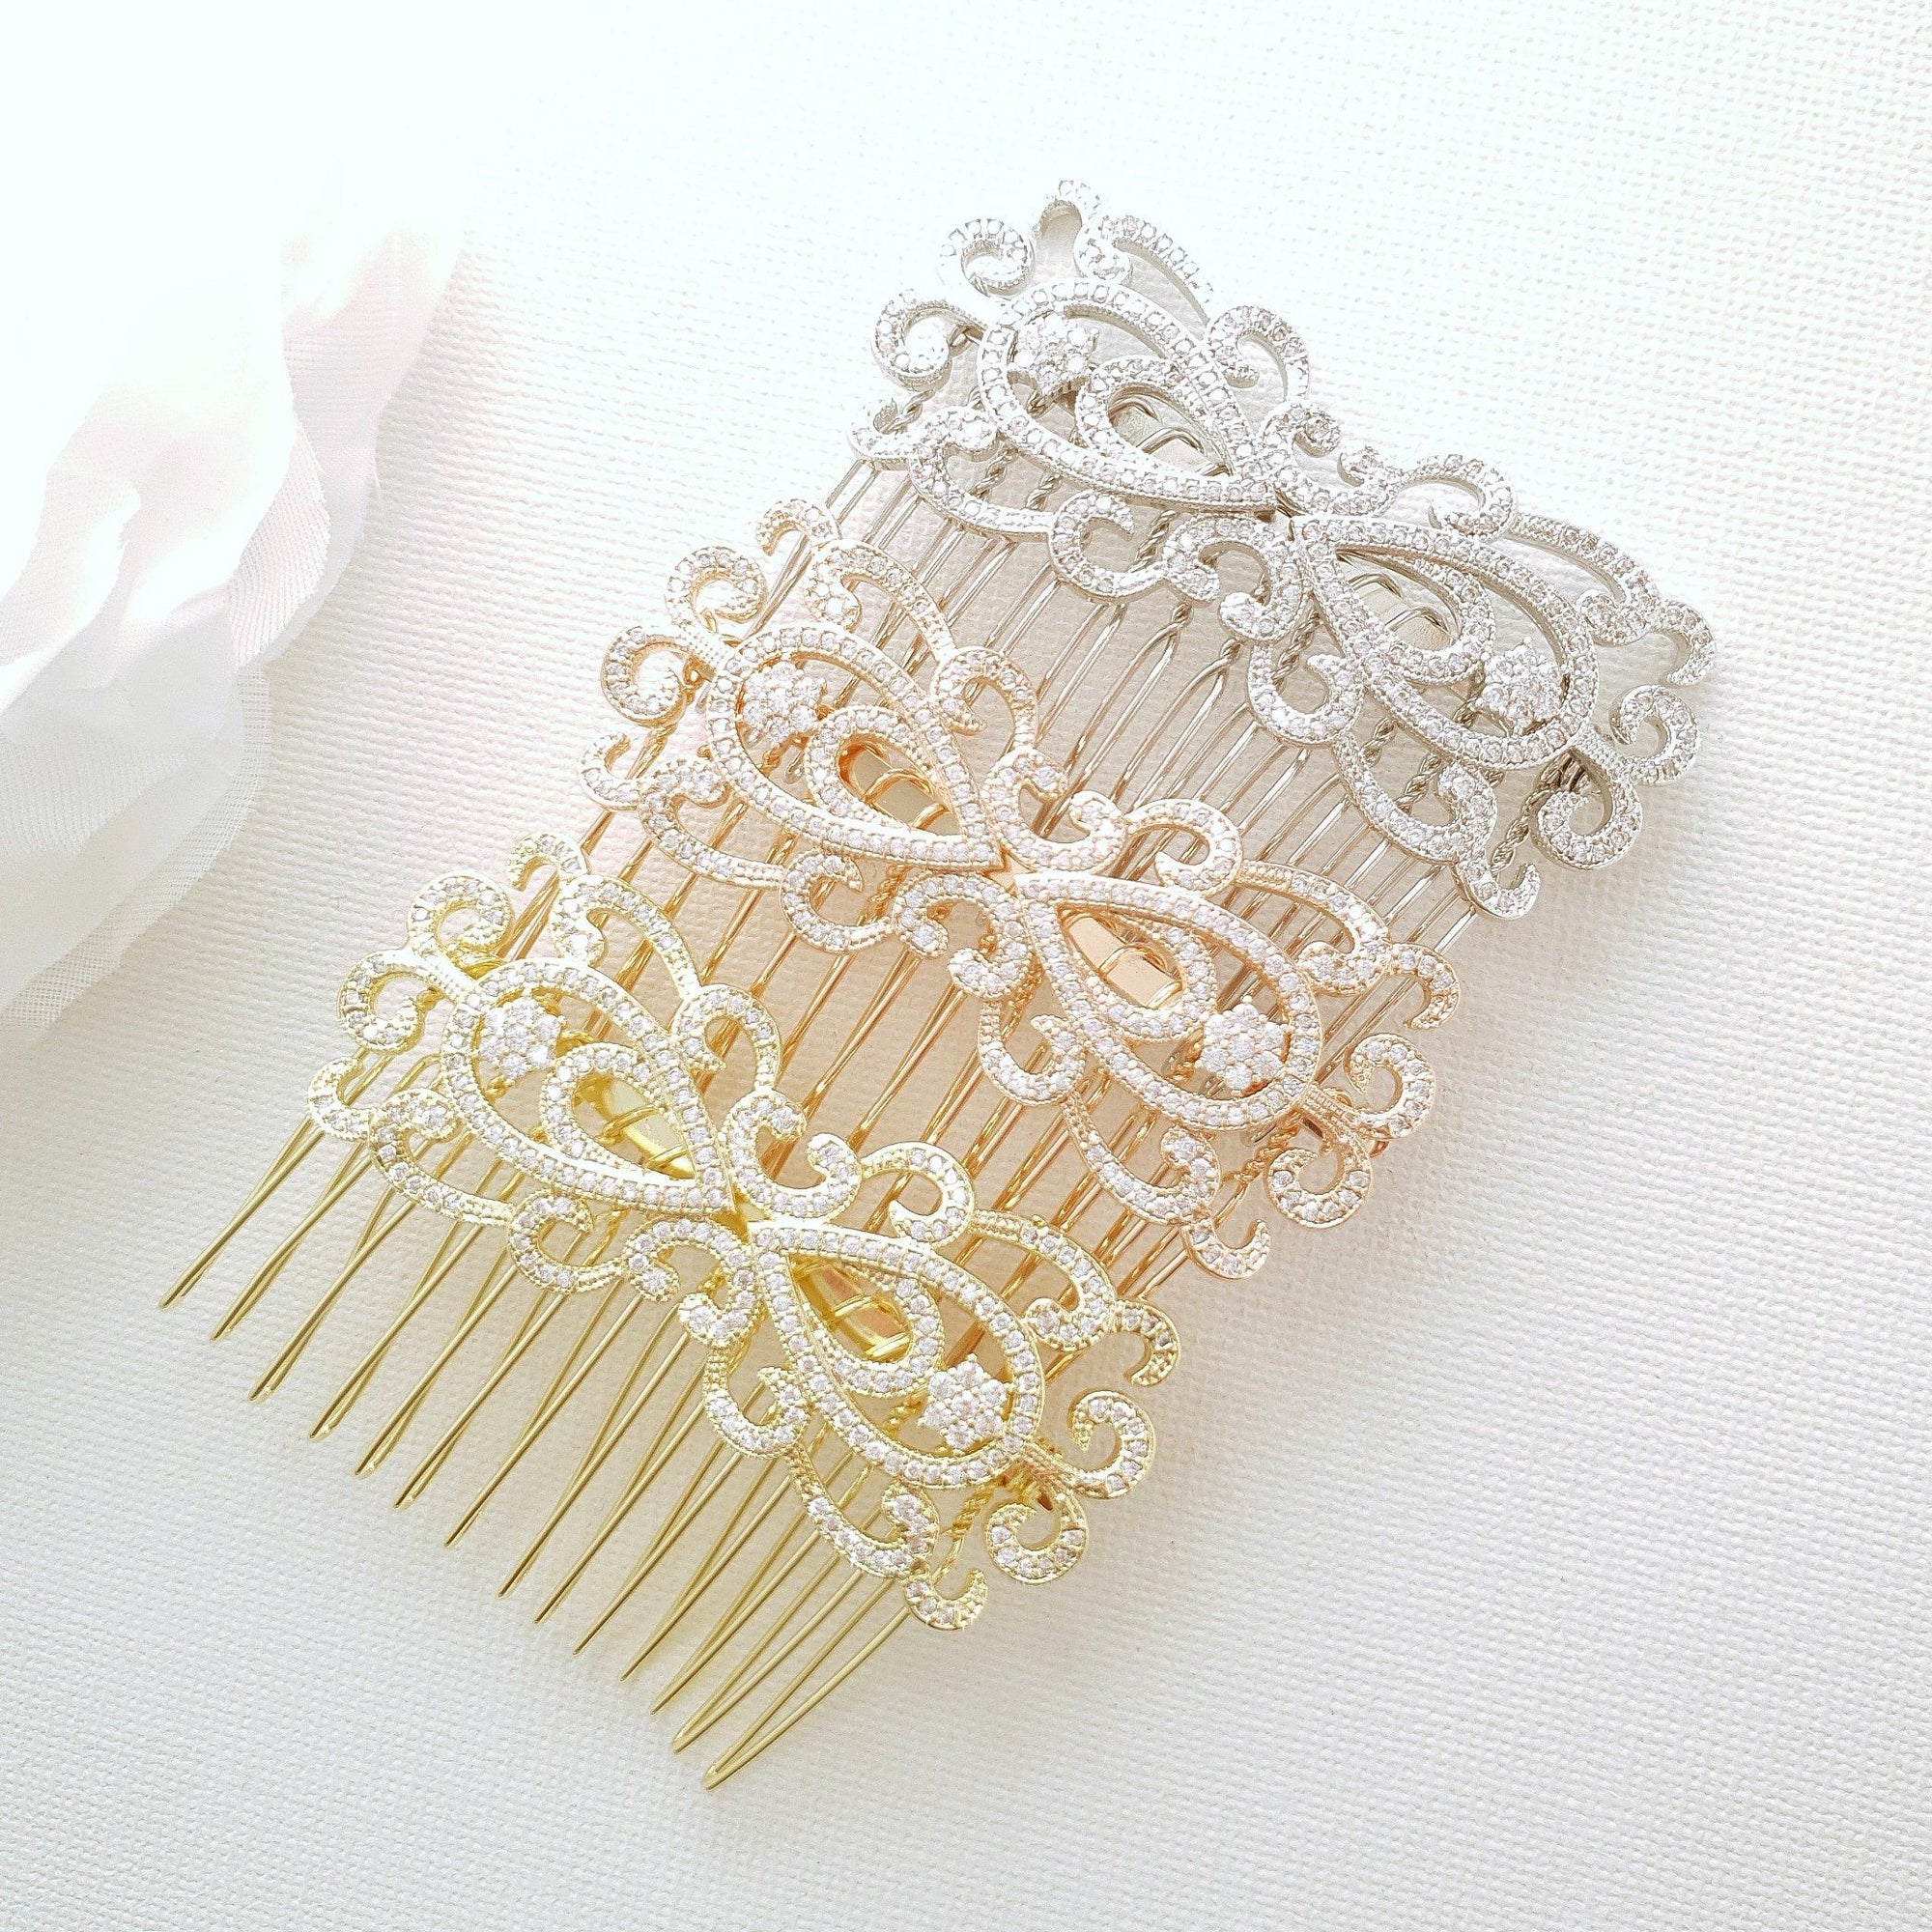 Rose Gold Vintage Bridal Hair Comb-Arletty - PoetryDesigns